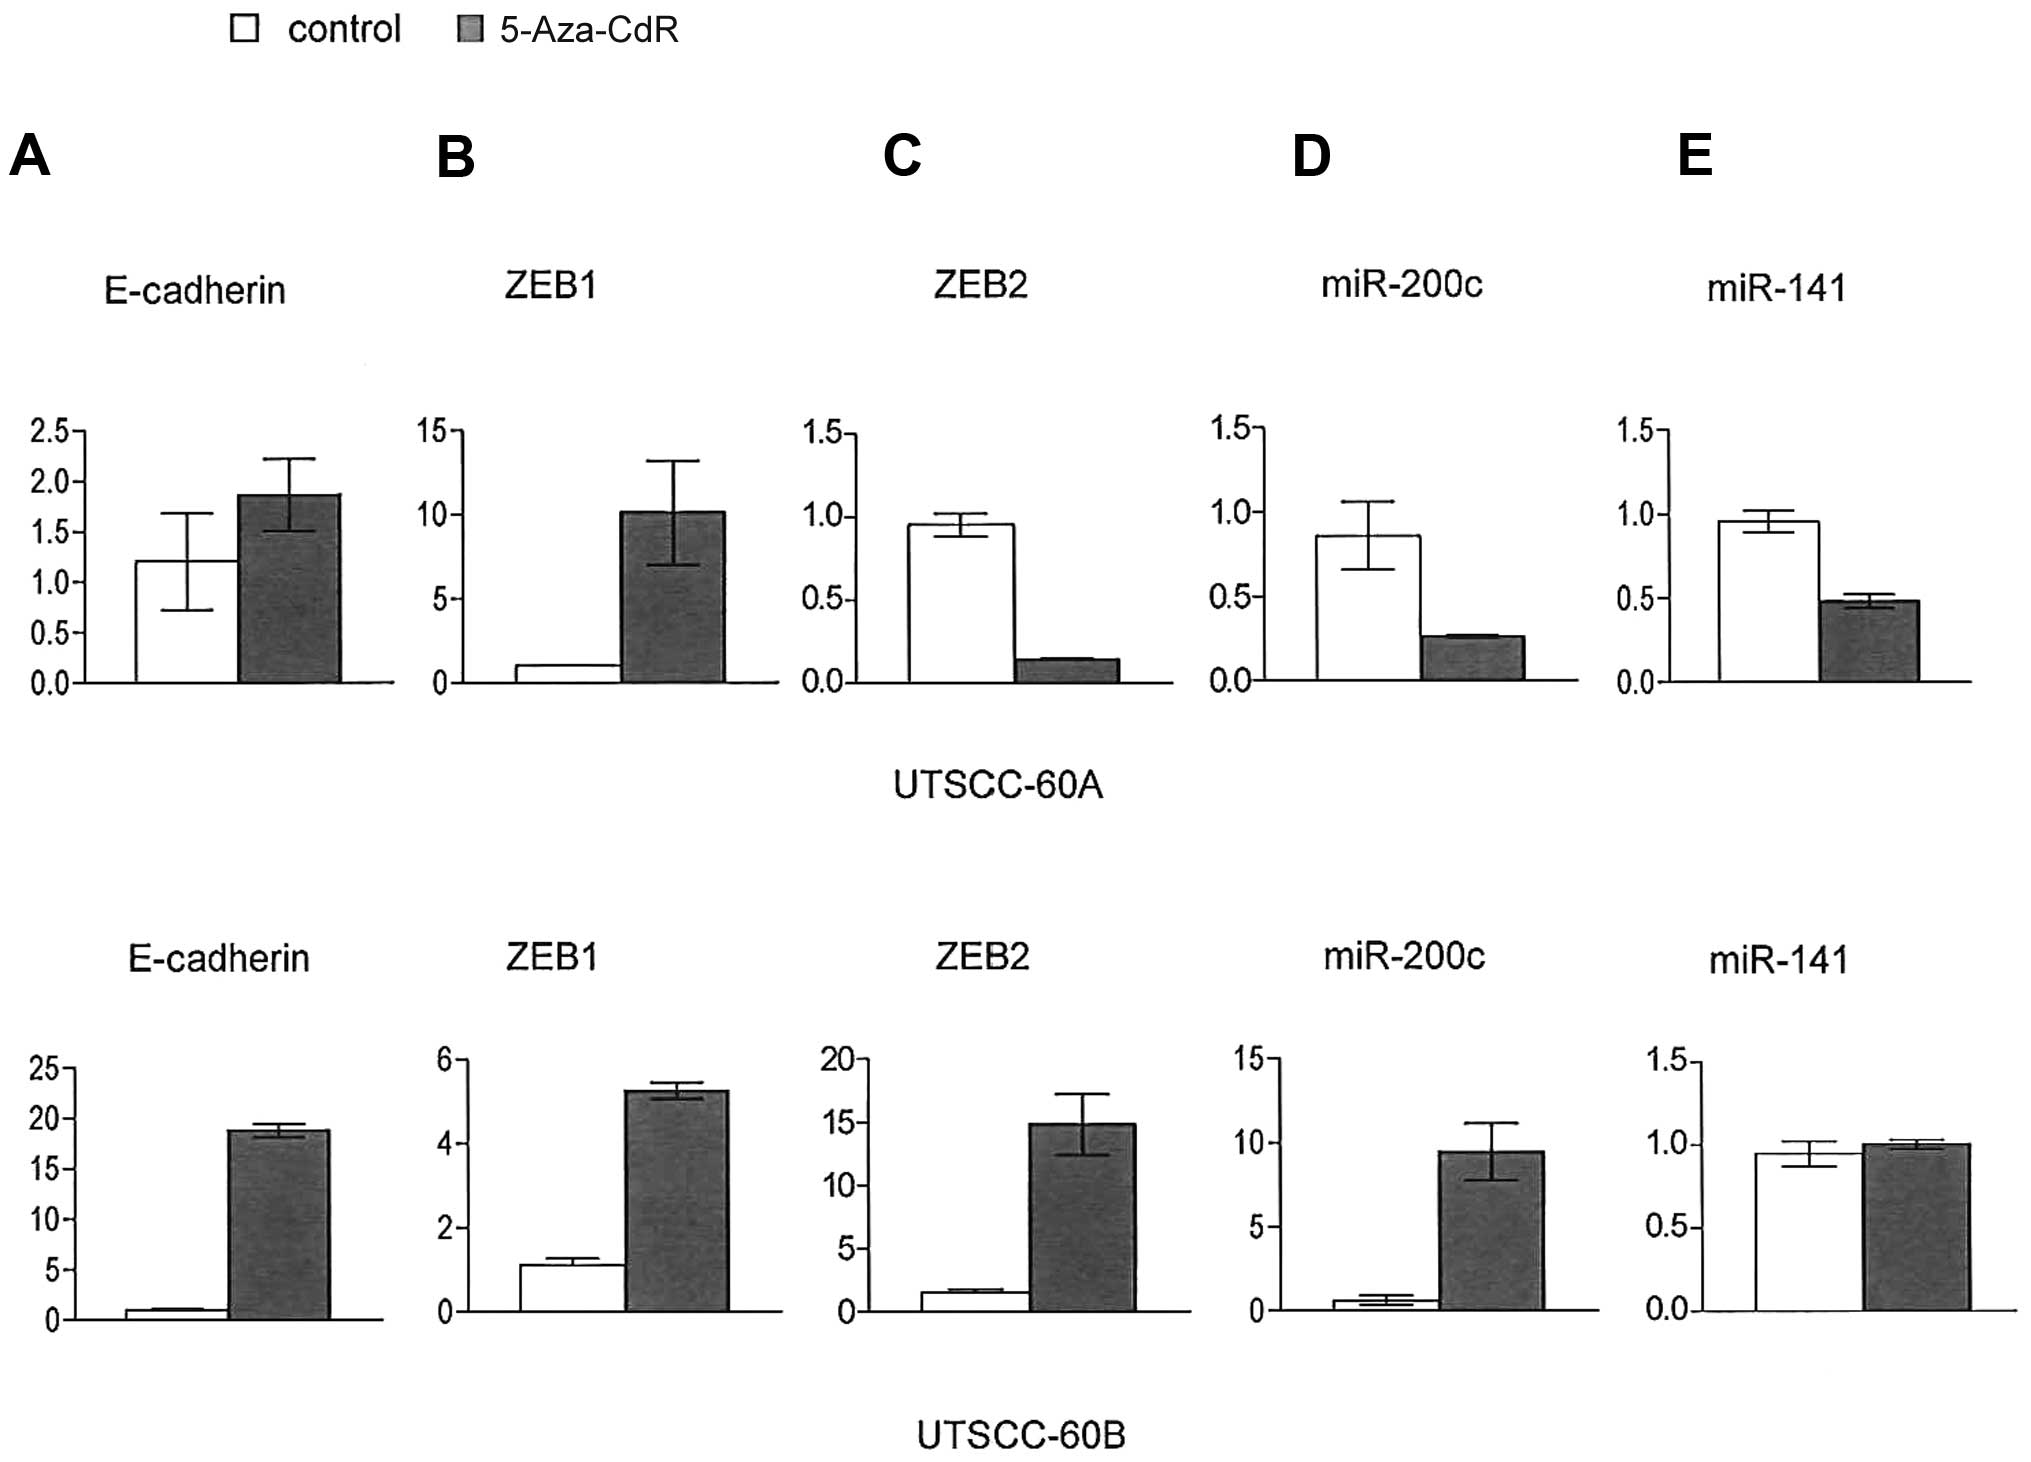 Role of miR-200c/miR-141 in the regulation of epithelial